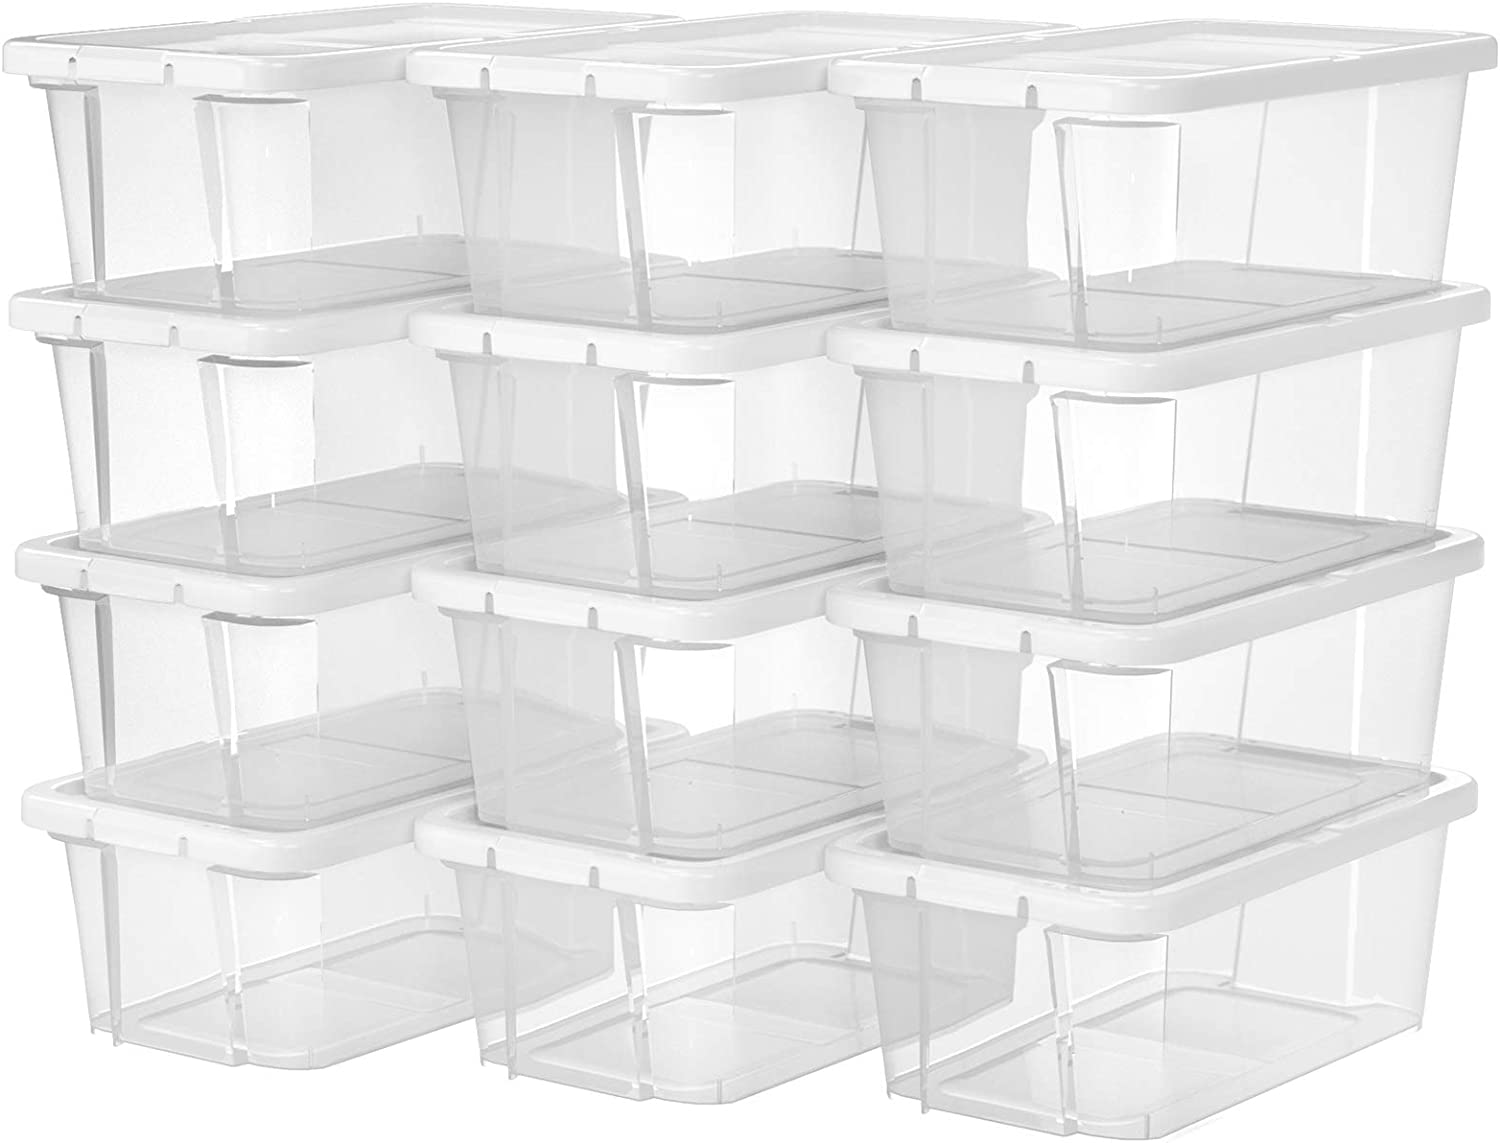 SONGMICS Set of 12 shoe boxes, storage boxes for shoes, shoe storage, storage box, transparent with lid, plastic for shoes up to size 41, LSP12WT